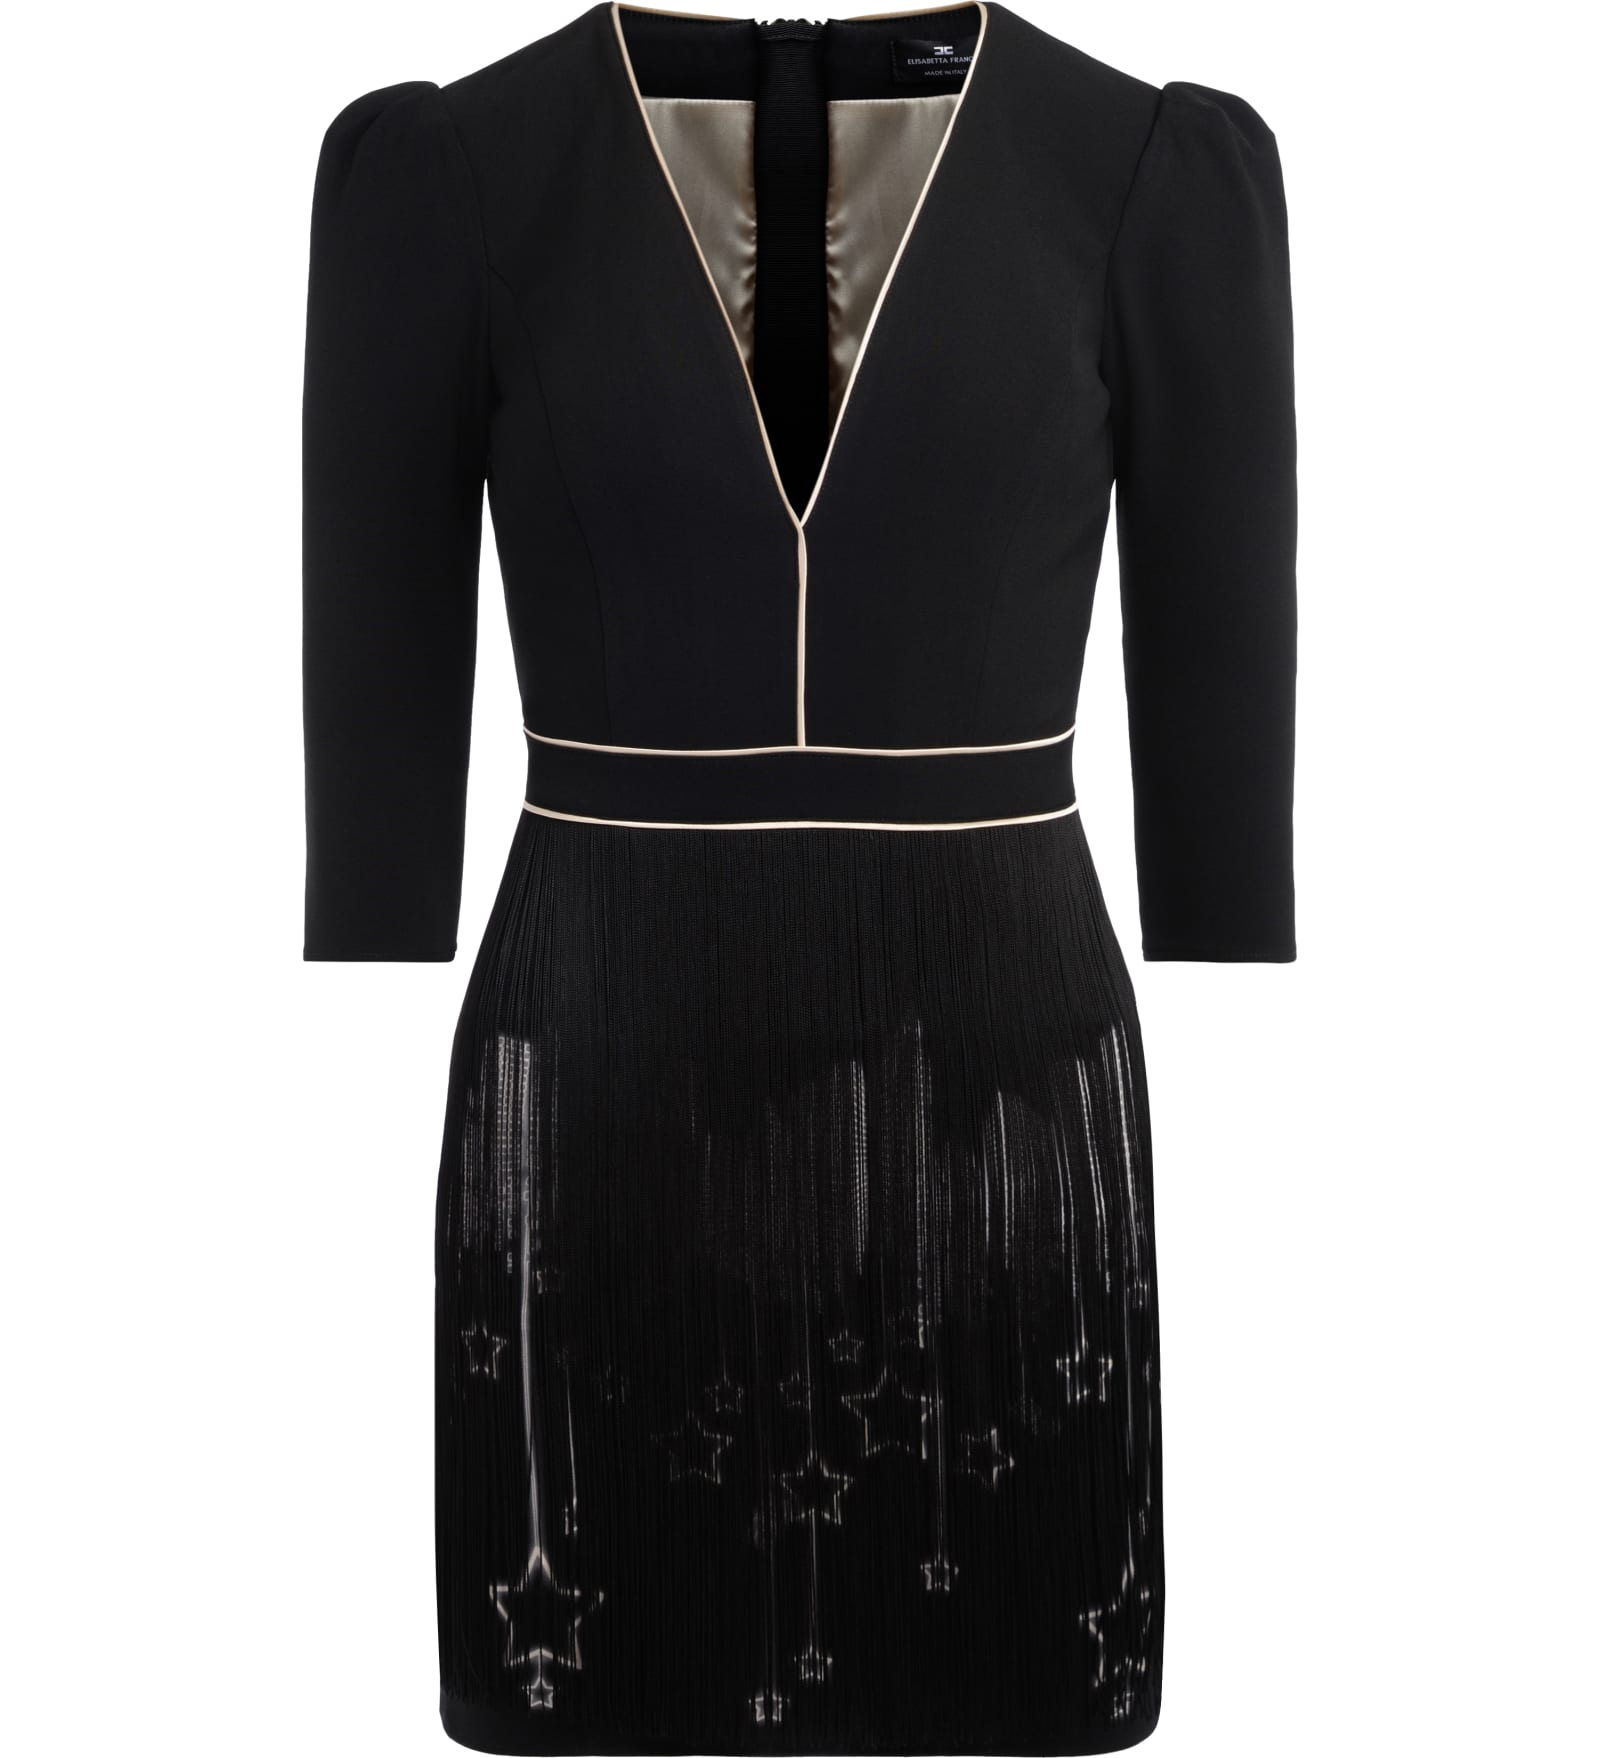 Elisabetta Franchi Black Dress With Contrasting Ivory Profiles